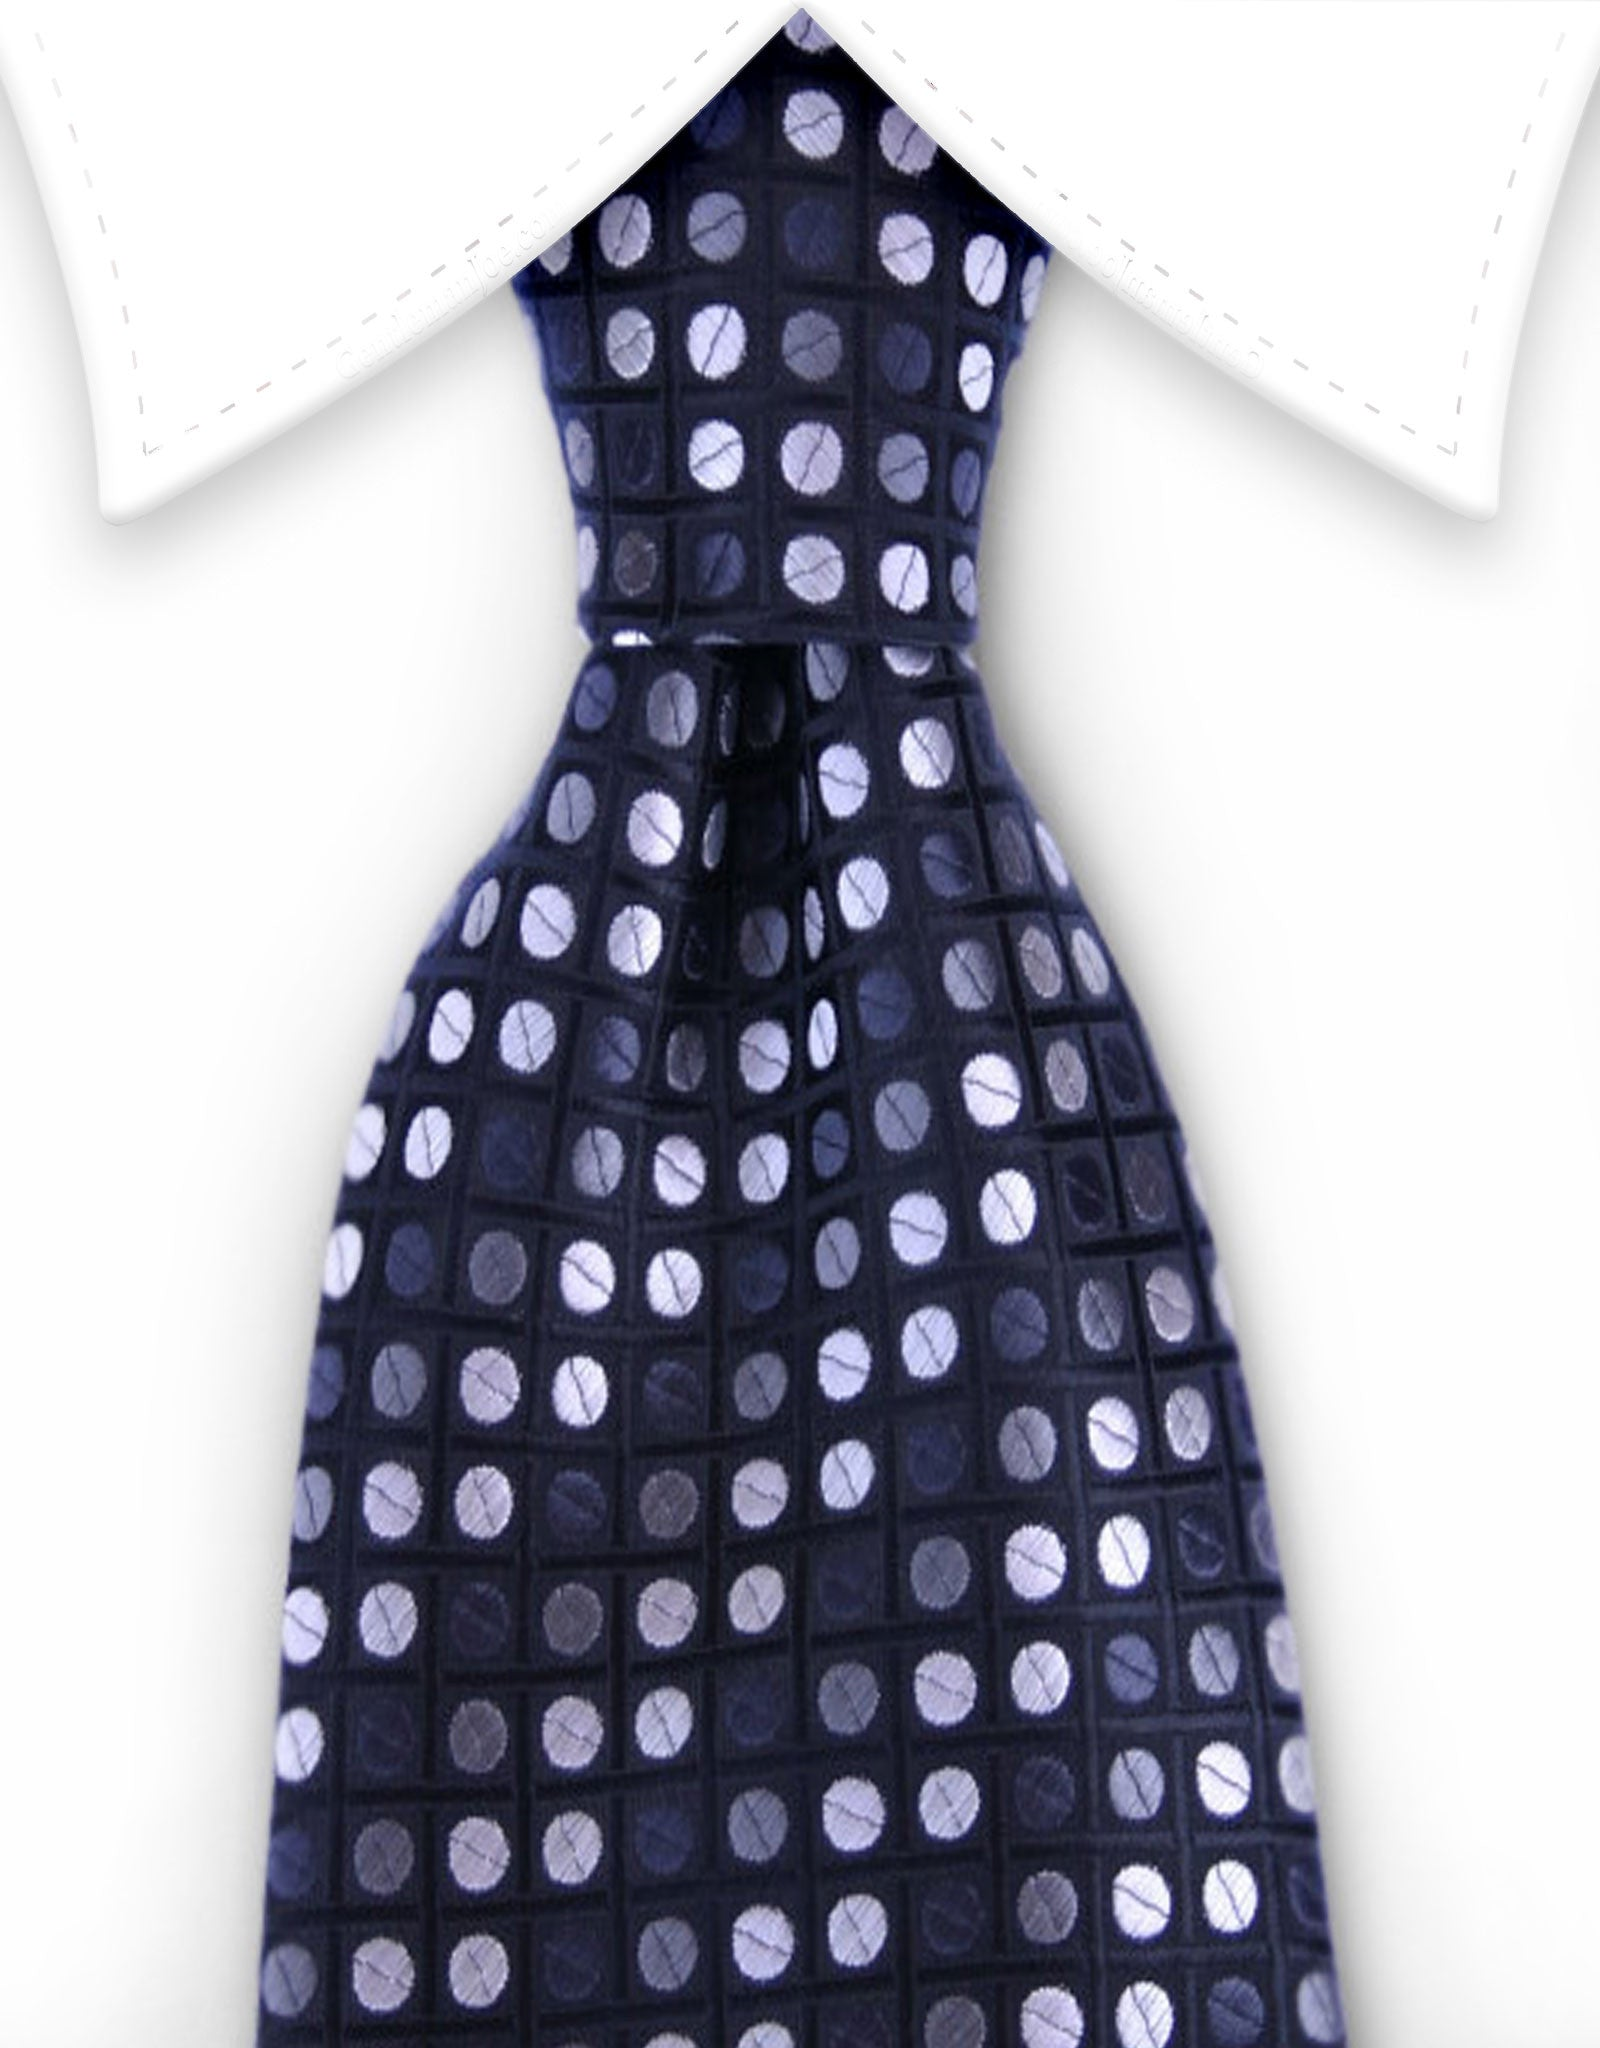 black, charcoal, silver polka dot tie